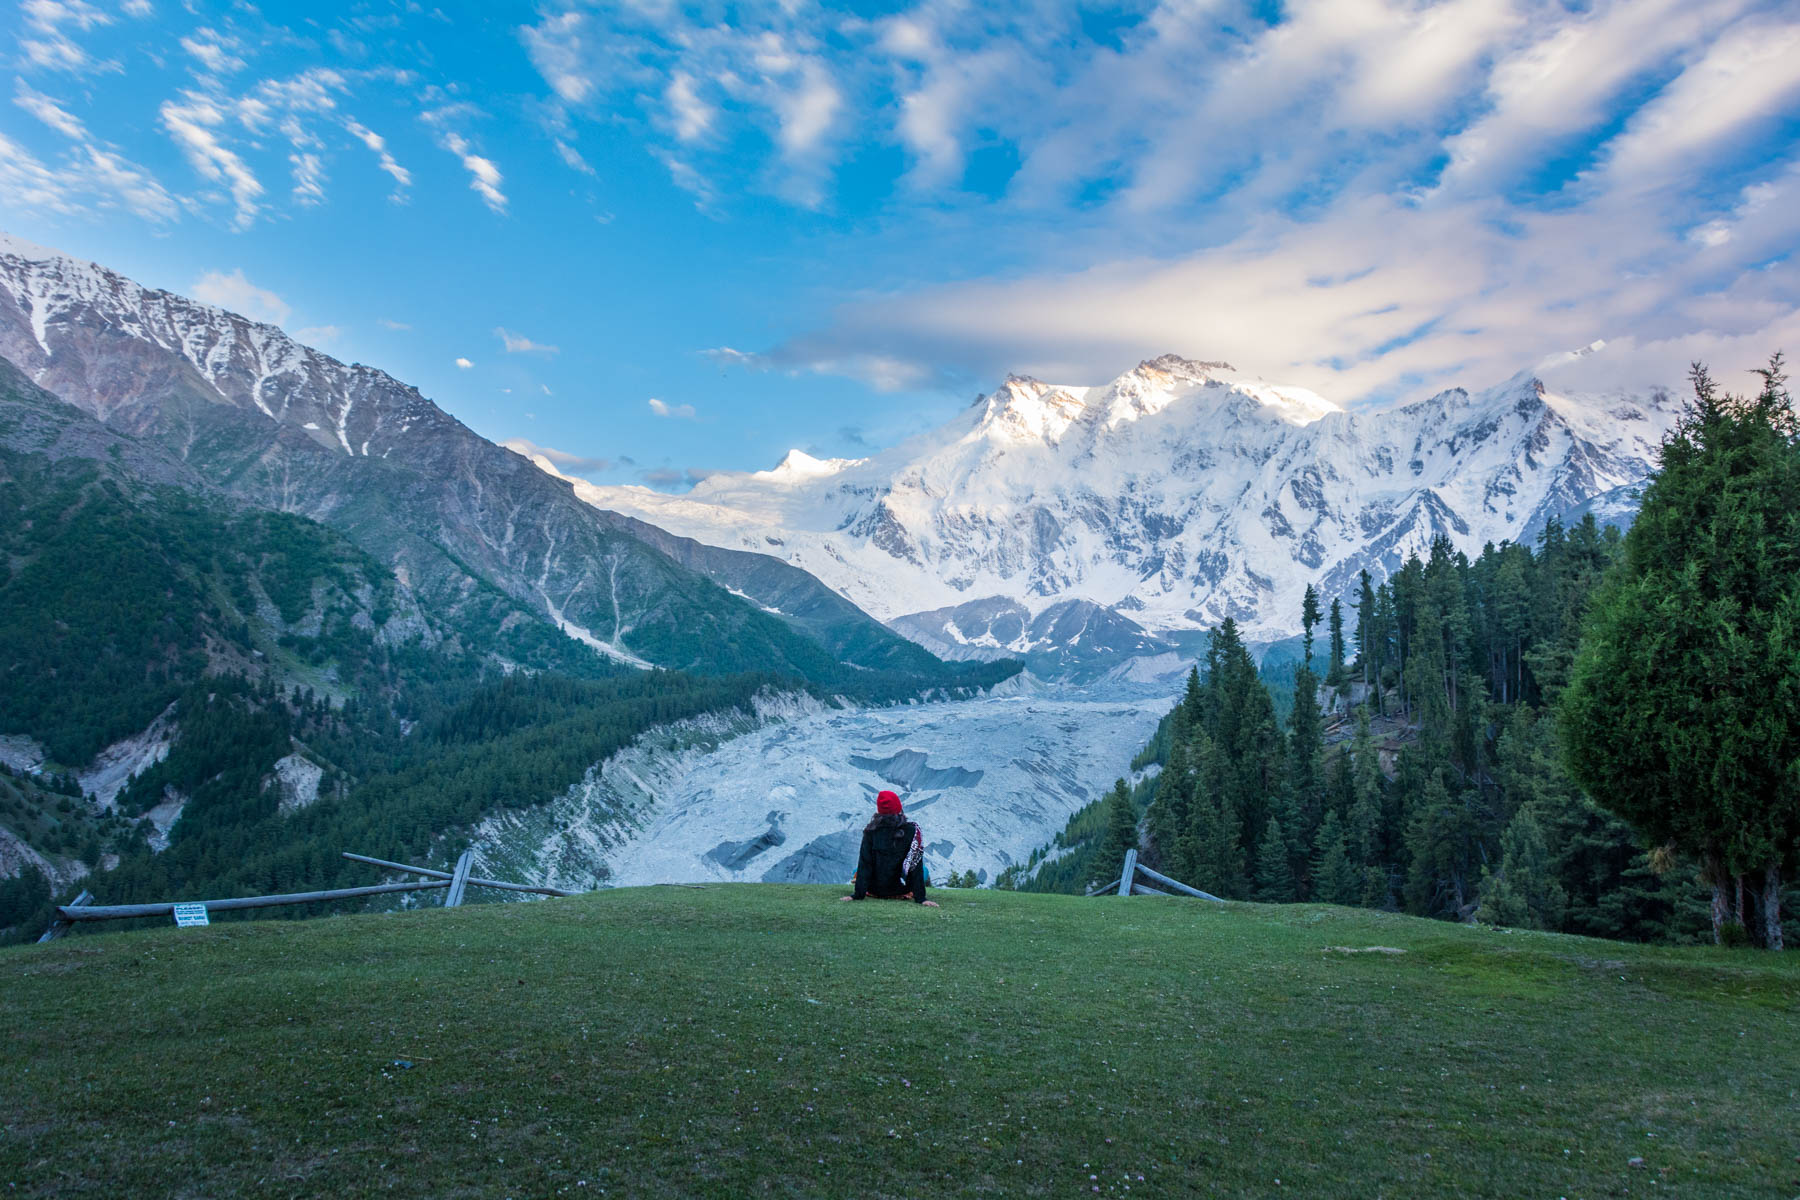 Solo female traveler checking out the sunset in Fairy Meadows, Pakistan